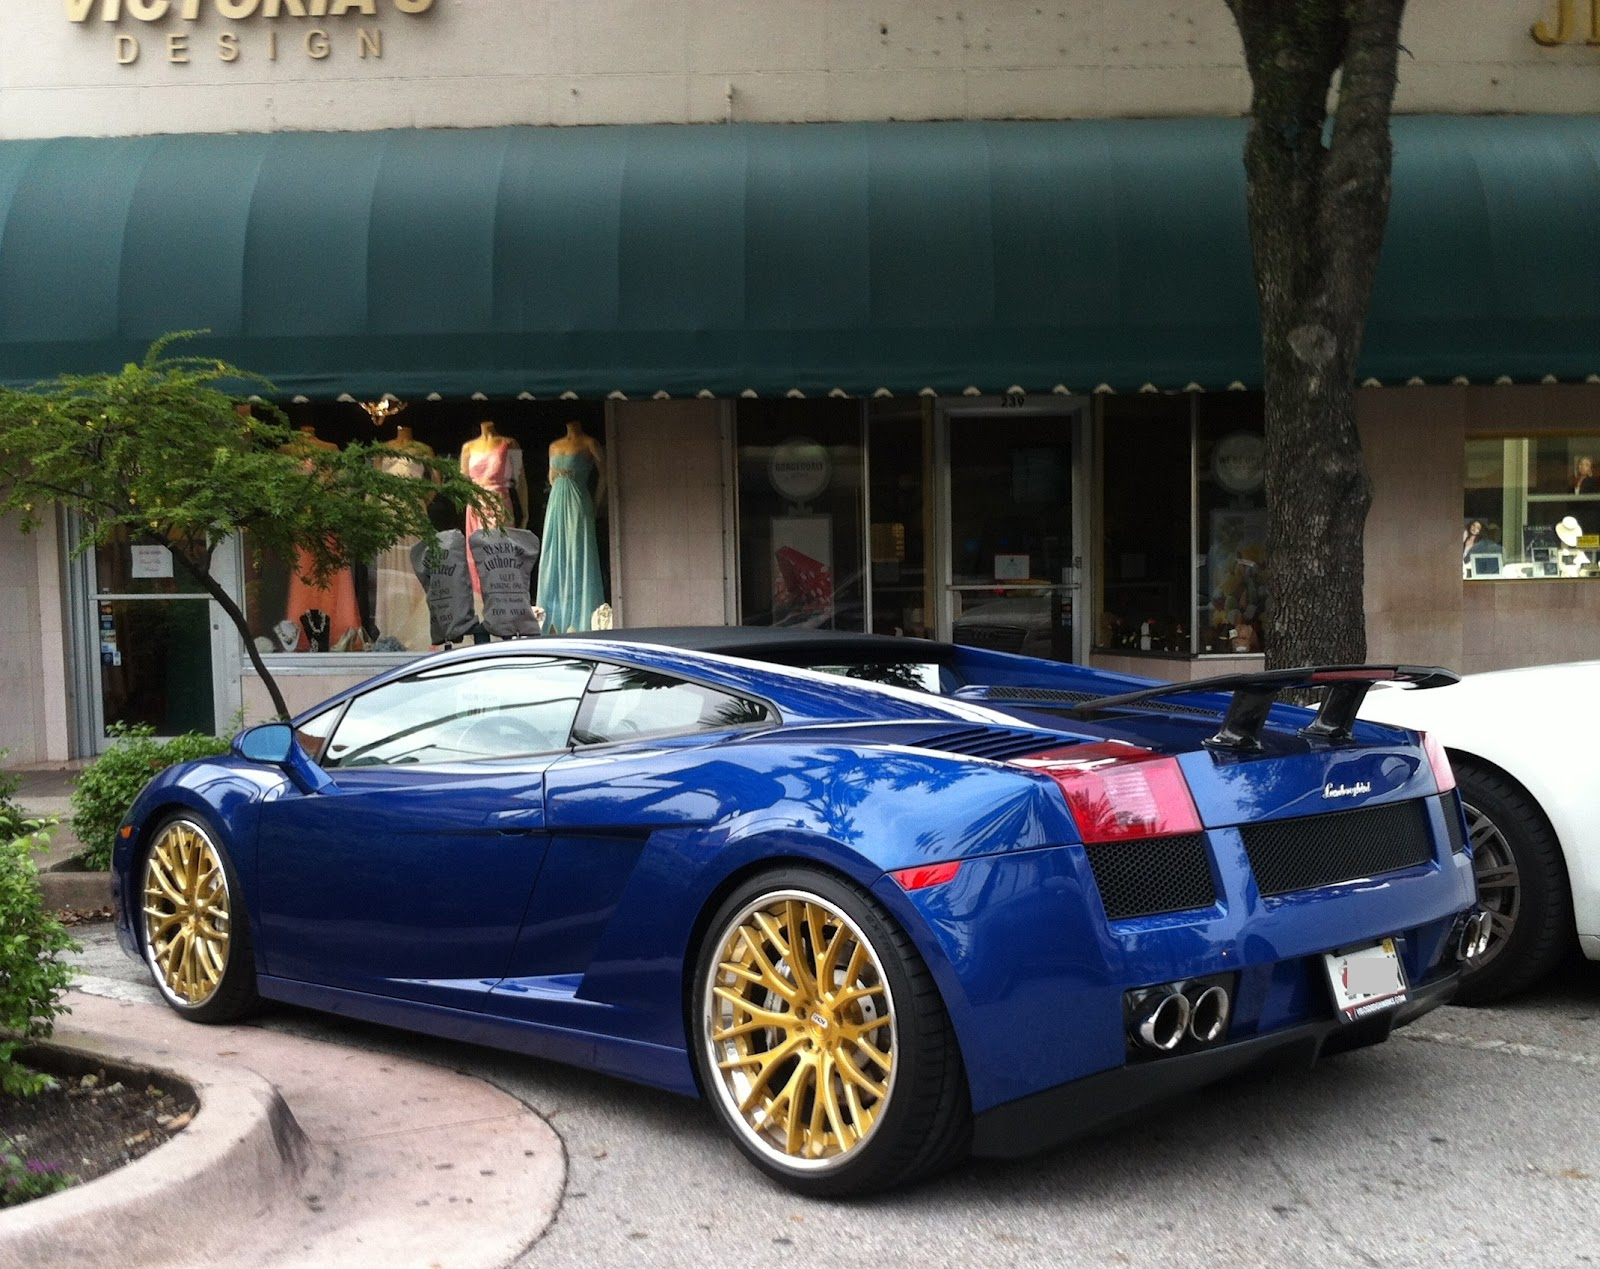 Blue Lamborghini Gallardo With Gold Rims And Rear Wing